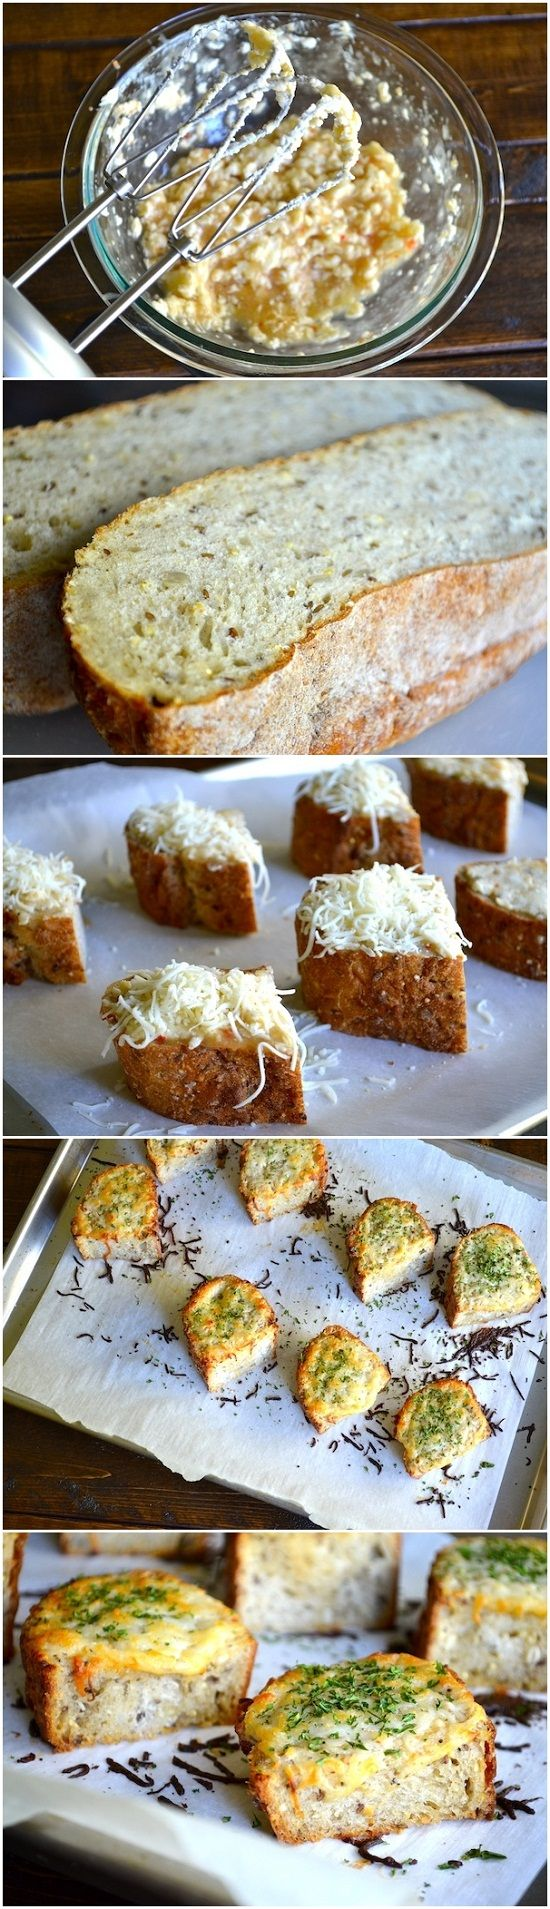 Garlic Cheese Bread  ½ cup butter, softened 2 cloves garlic, minced ½ cup italian salad dressing 1 loaf Italian bread 2 cups mozzarella, shredded 2 teaspoons parsley Instructions  Preheat oven to 375 degrees. Blend butter, garlic and salad dressing together with a hand mixer. Slice loaf in half length-wise and slice each half into 8 pieces. Arrange bread on a lined baking sheet. Spread butter mixture over slices. Sprinkle with mozzarella and parsley. Bake for 15-20 minutes